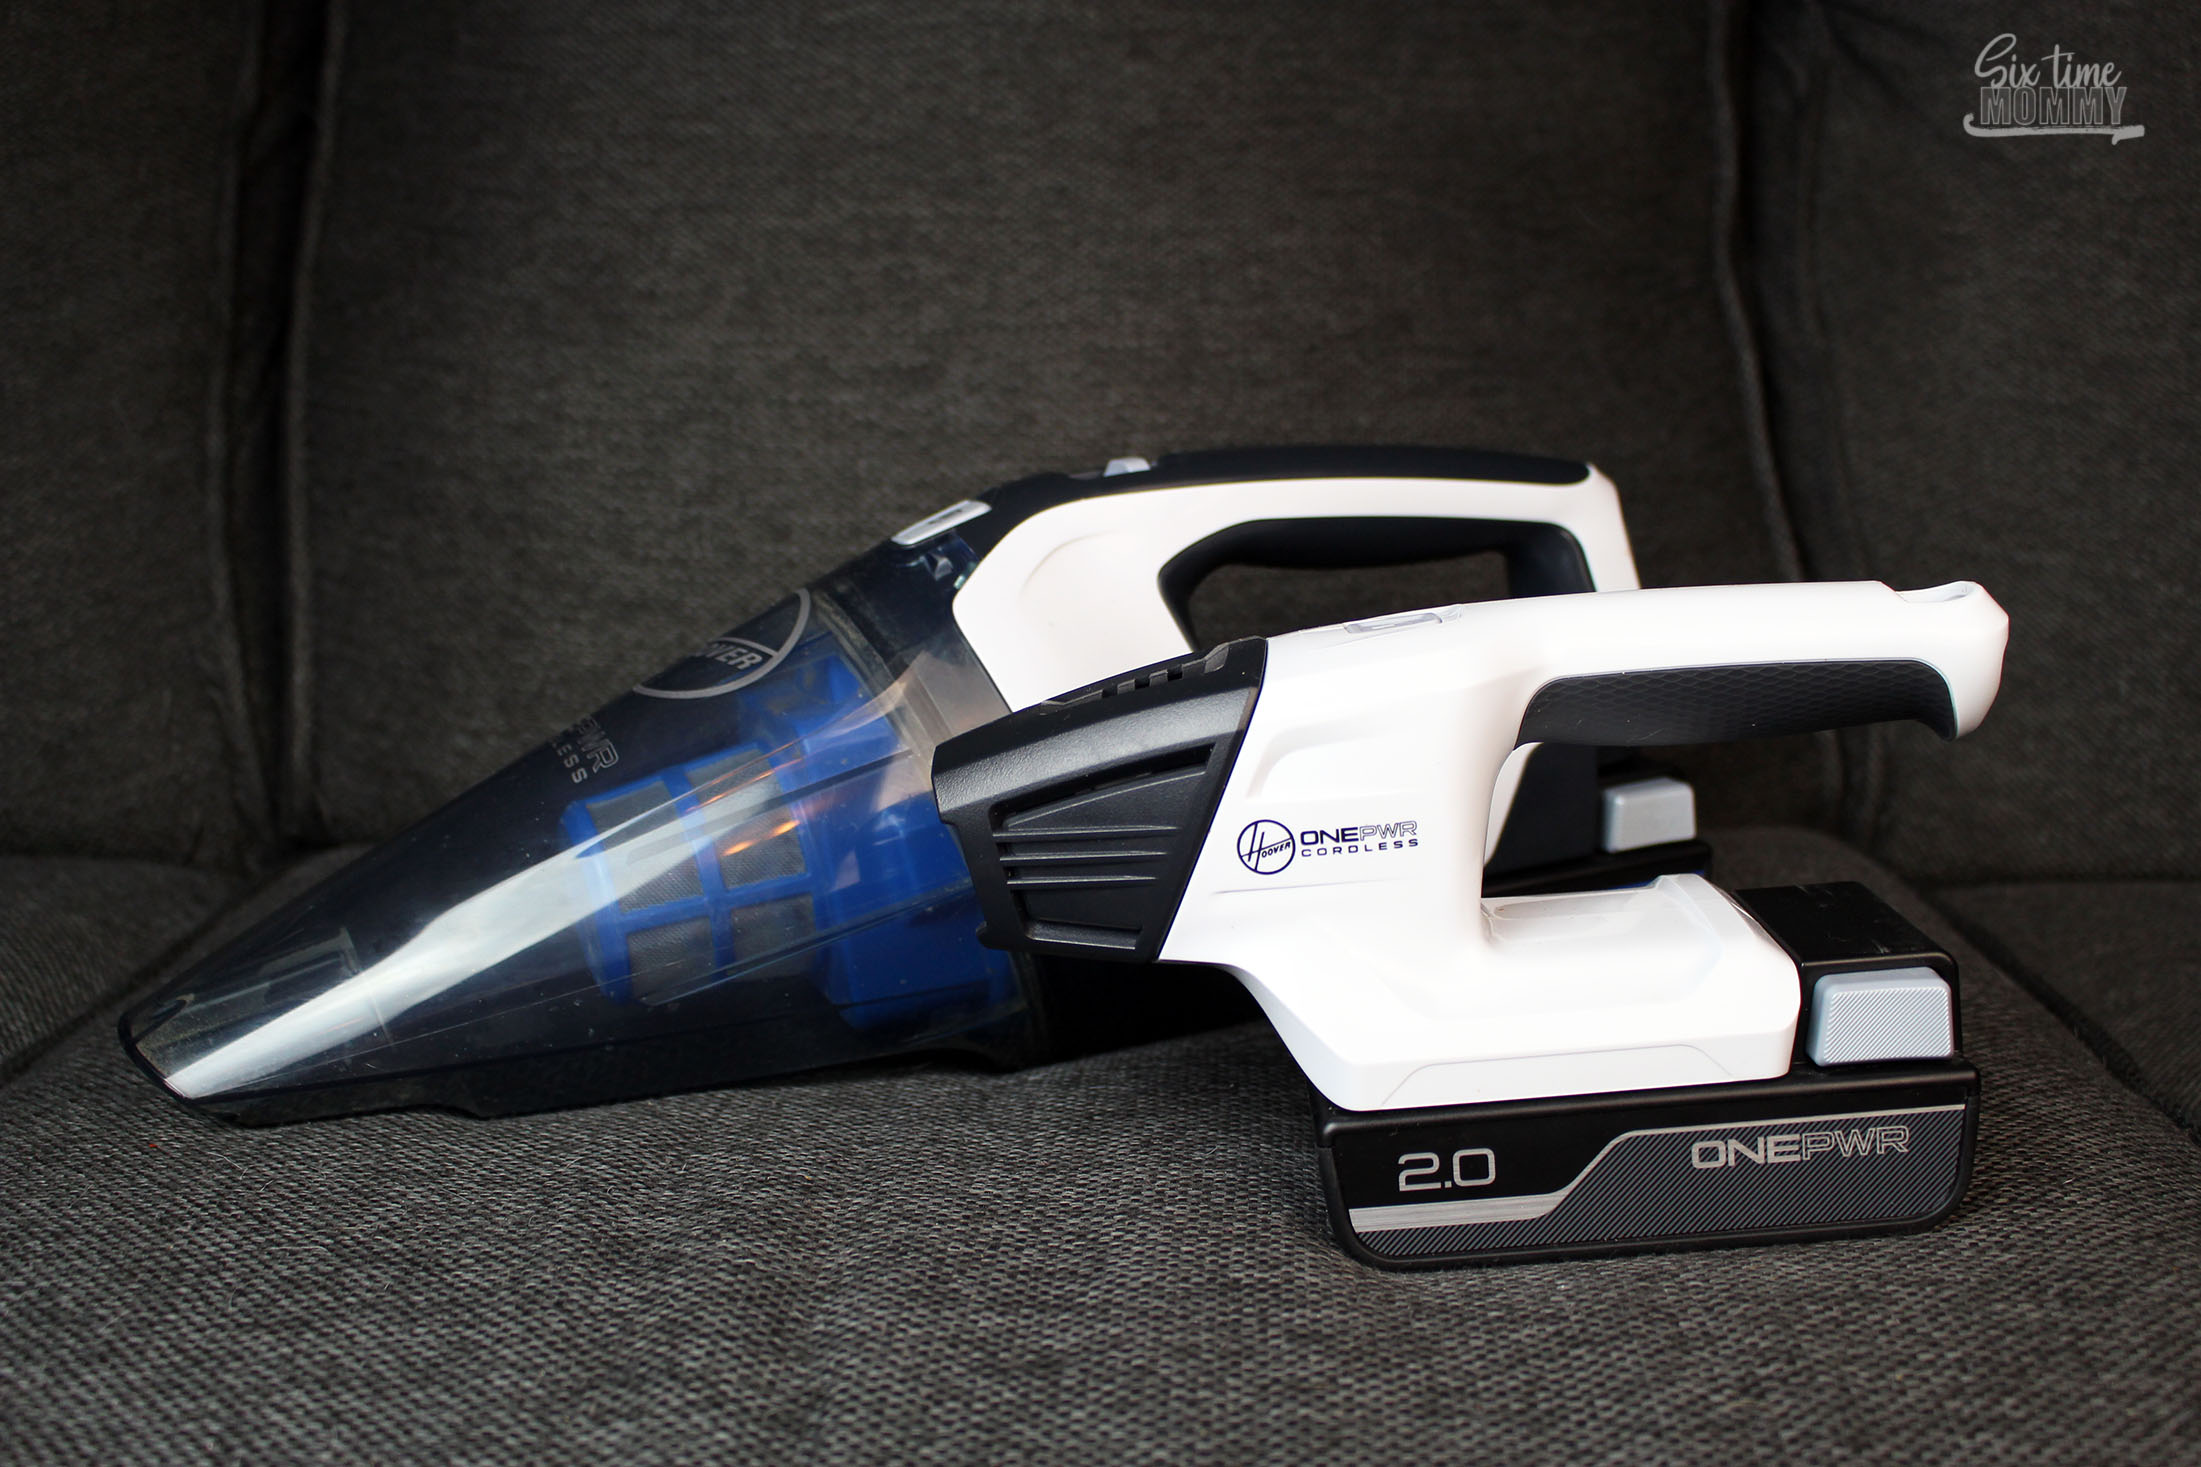 Preparing for Cooler Weather With These 2 Must-Have Products from Hoover